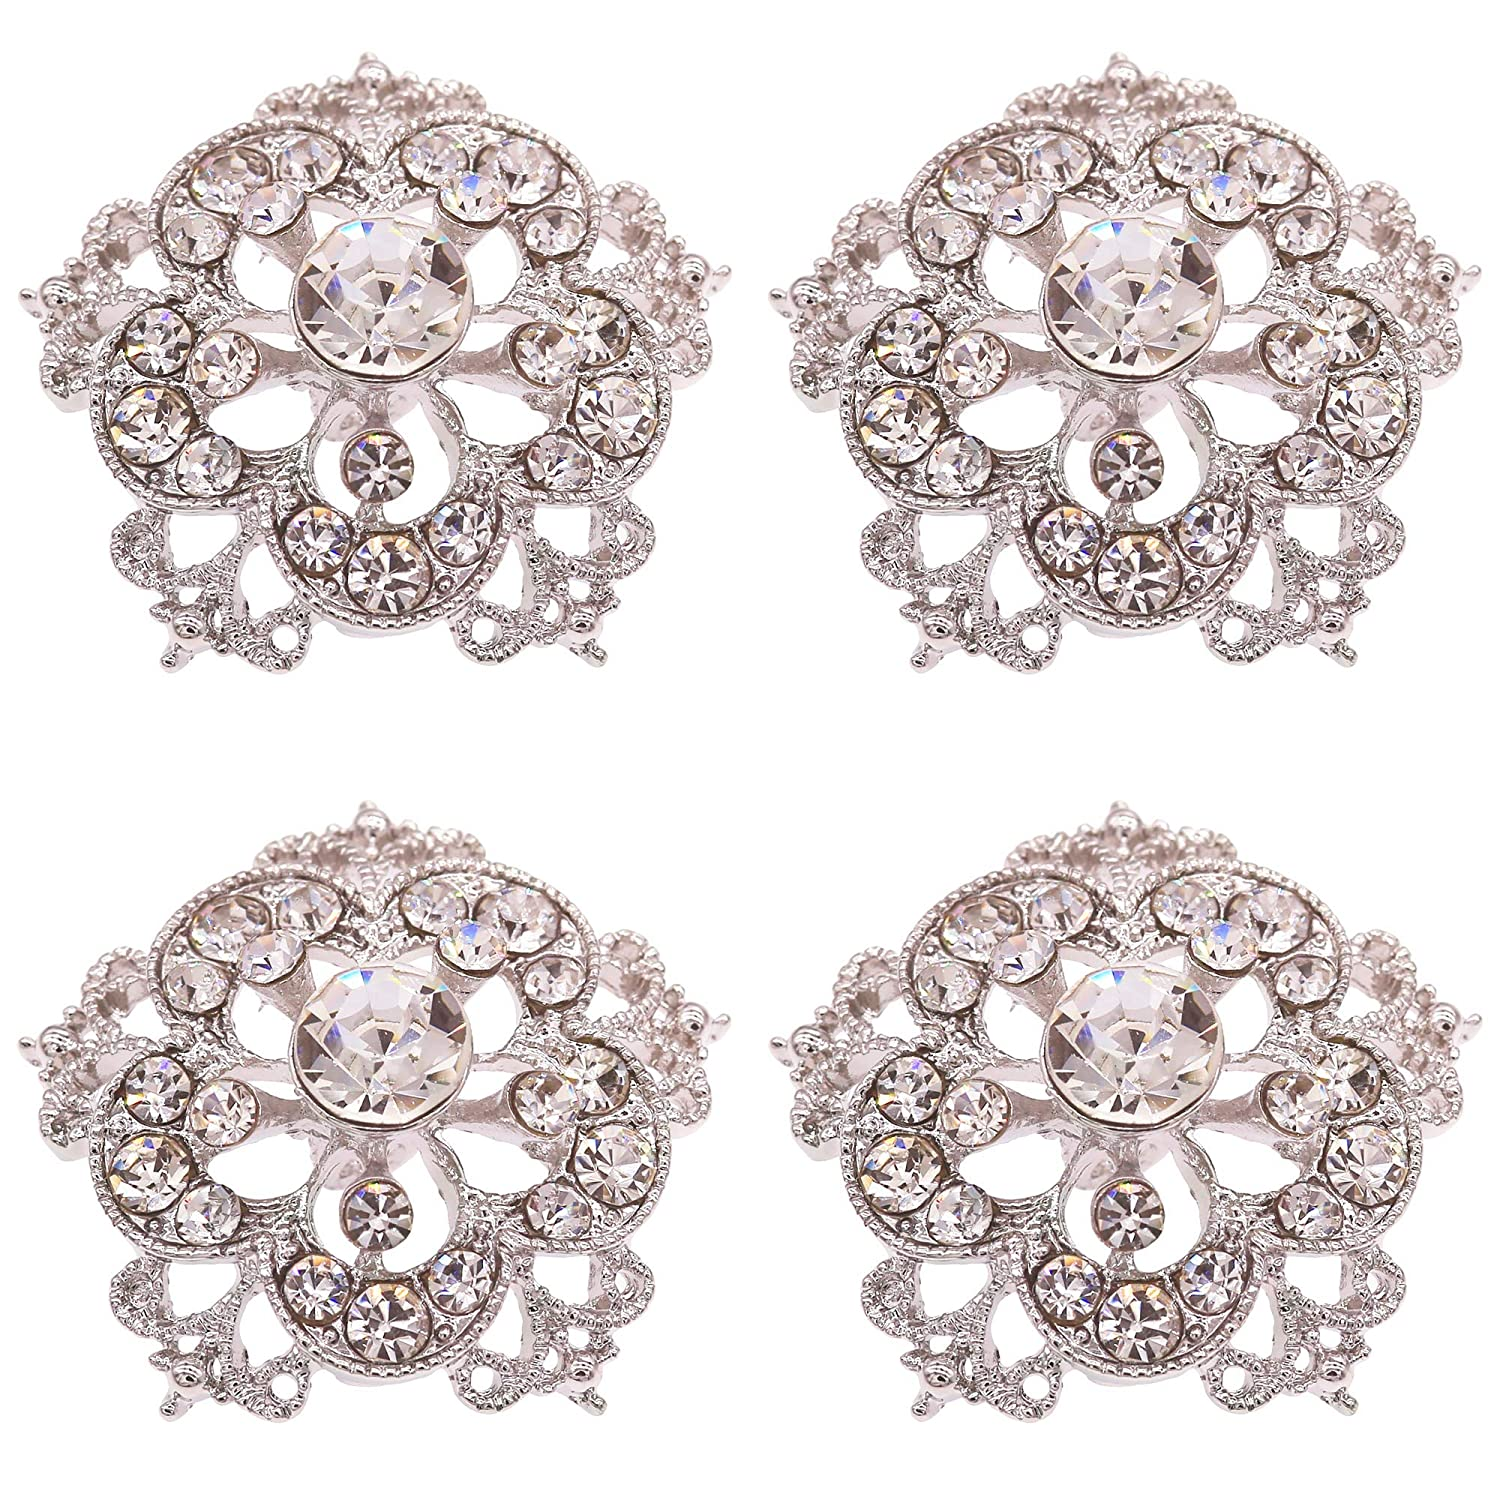 Amazon.com  SHINYTIME Crystal Rhinestone Buttons 4 Pieces Sew-On Silver  Tone Flower Buttons for Wedding Bouquet Accessories and DIY Crafts 1.2X1.2  inches b6cd5d5bb879